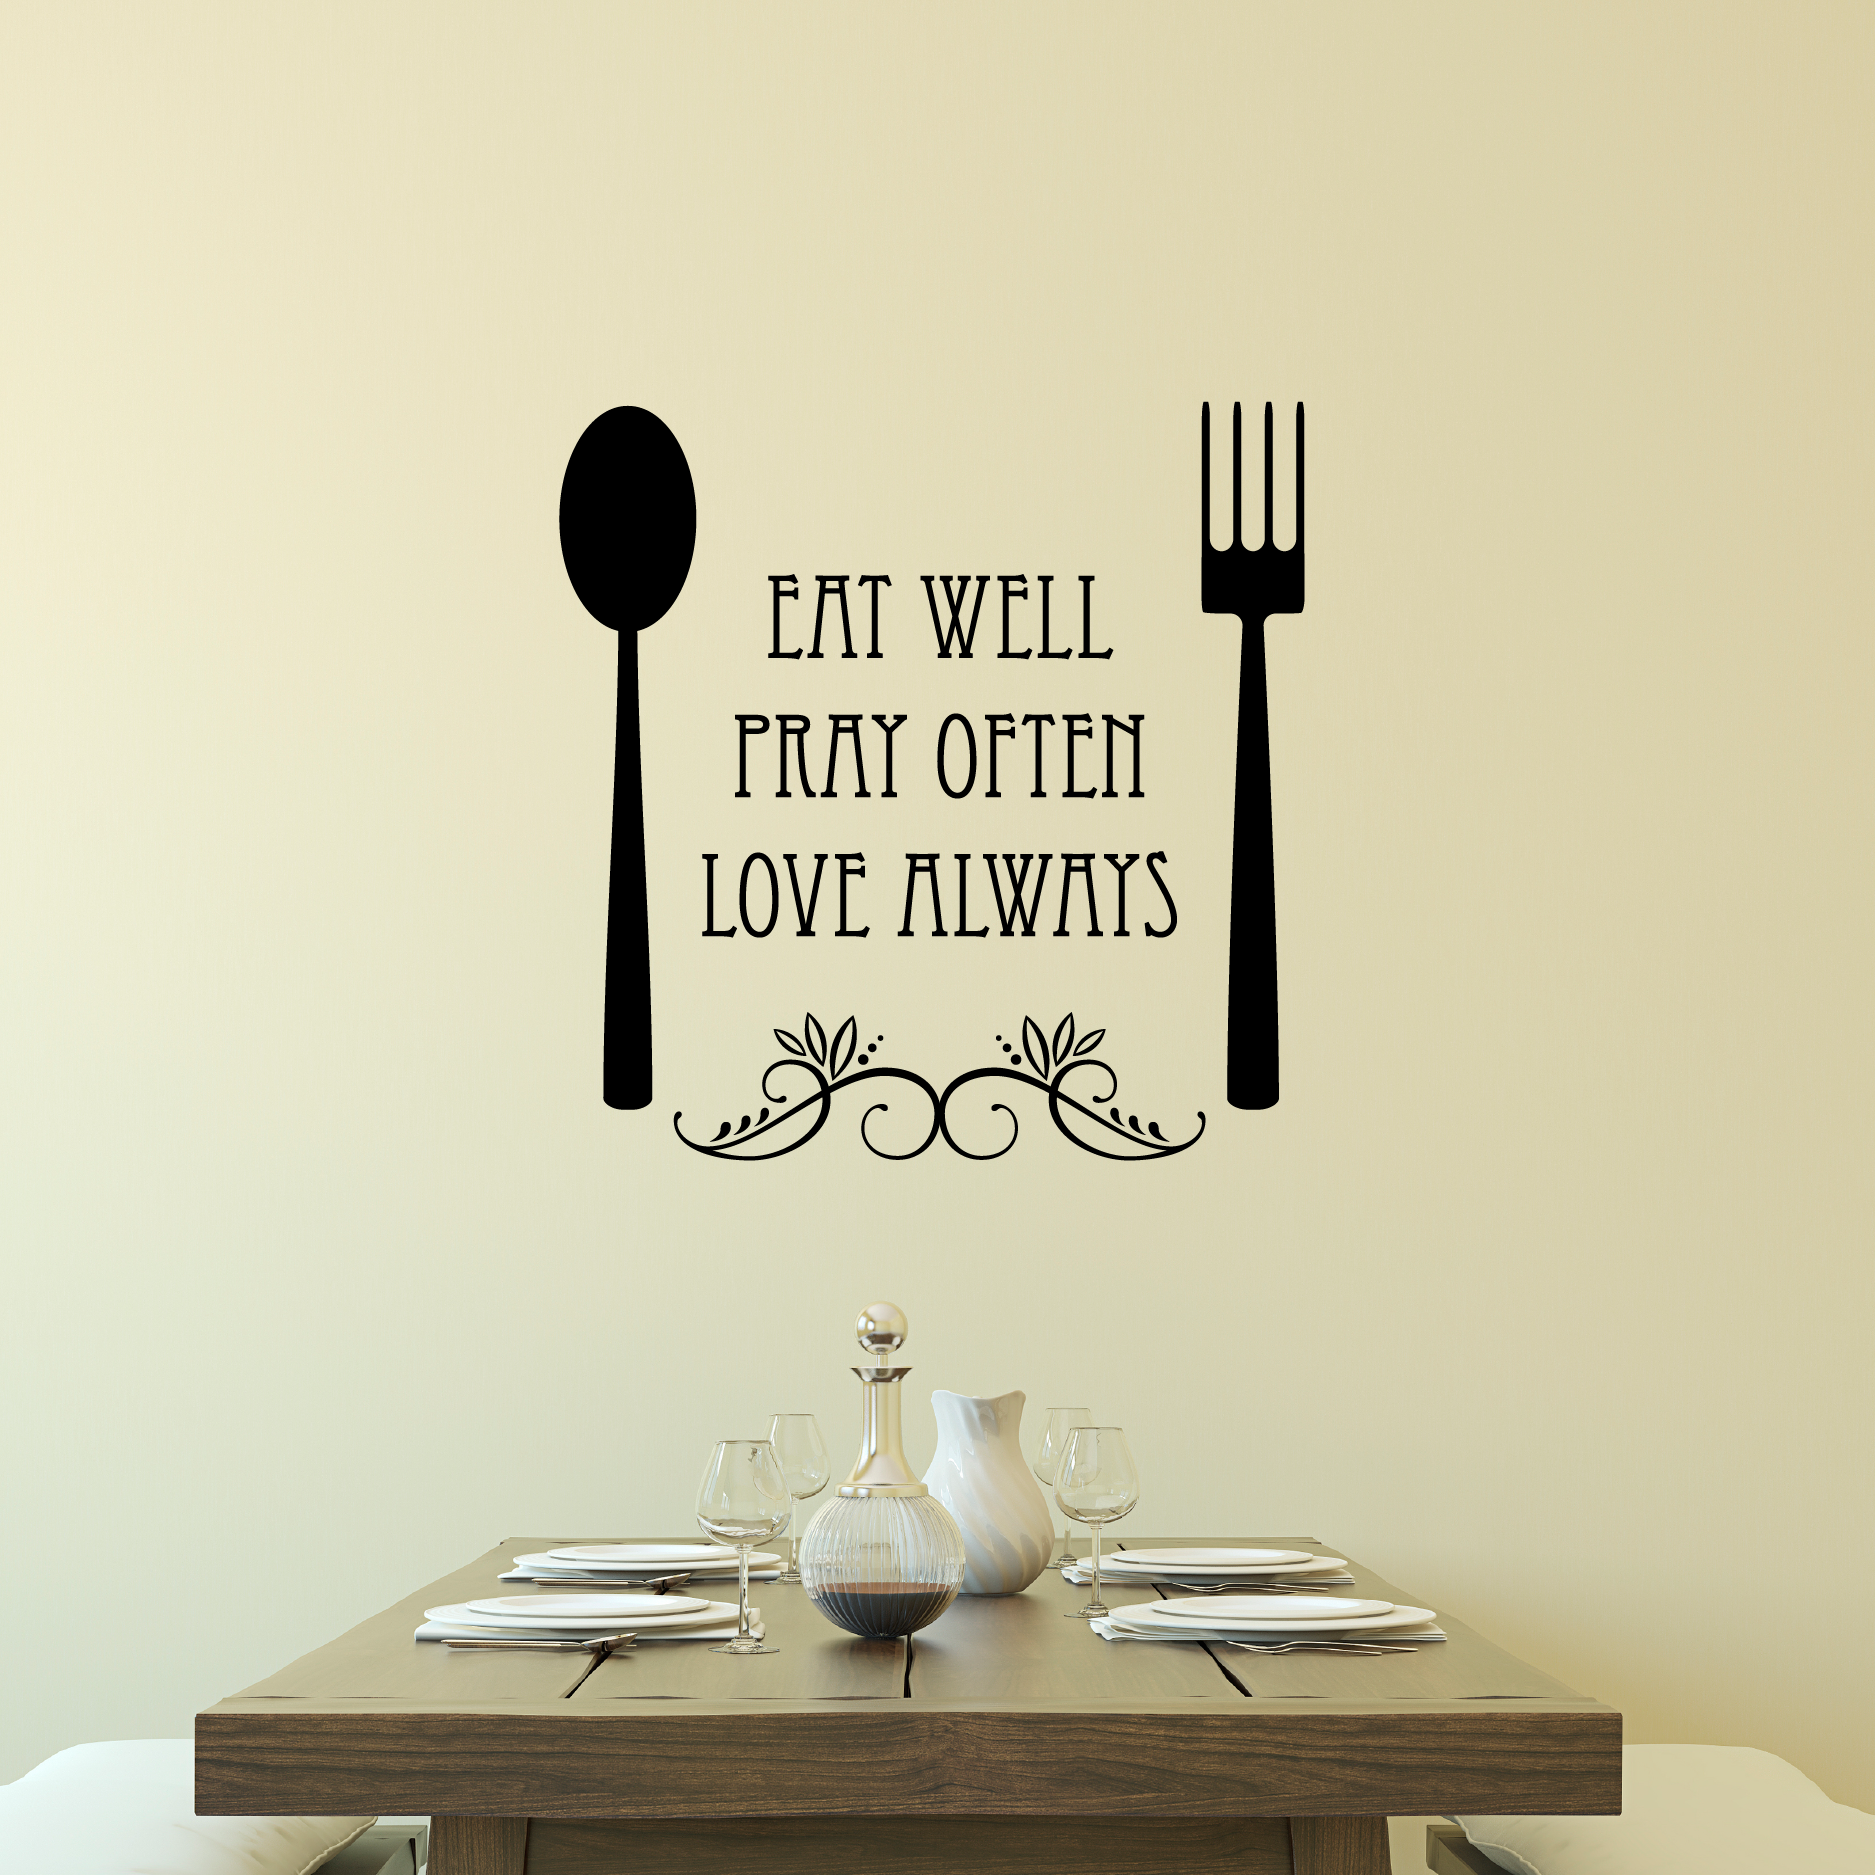 Eat Well Spoon And Fork Wall Quotes Decal Wallquotes Com